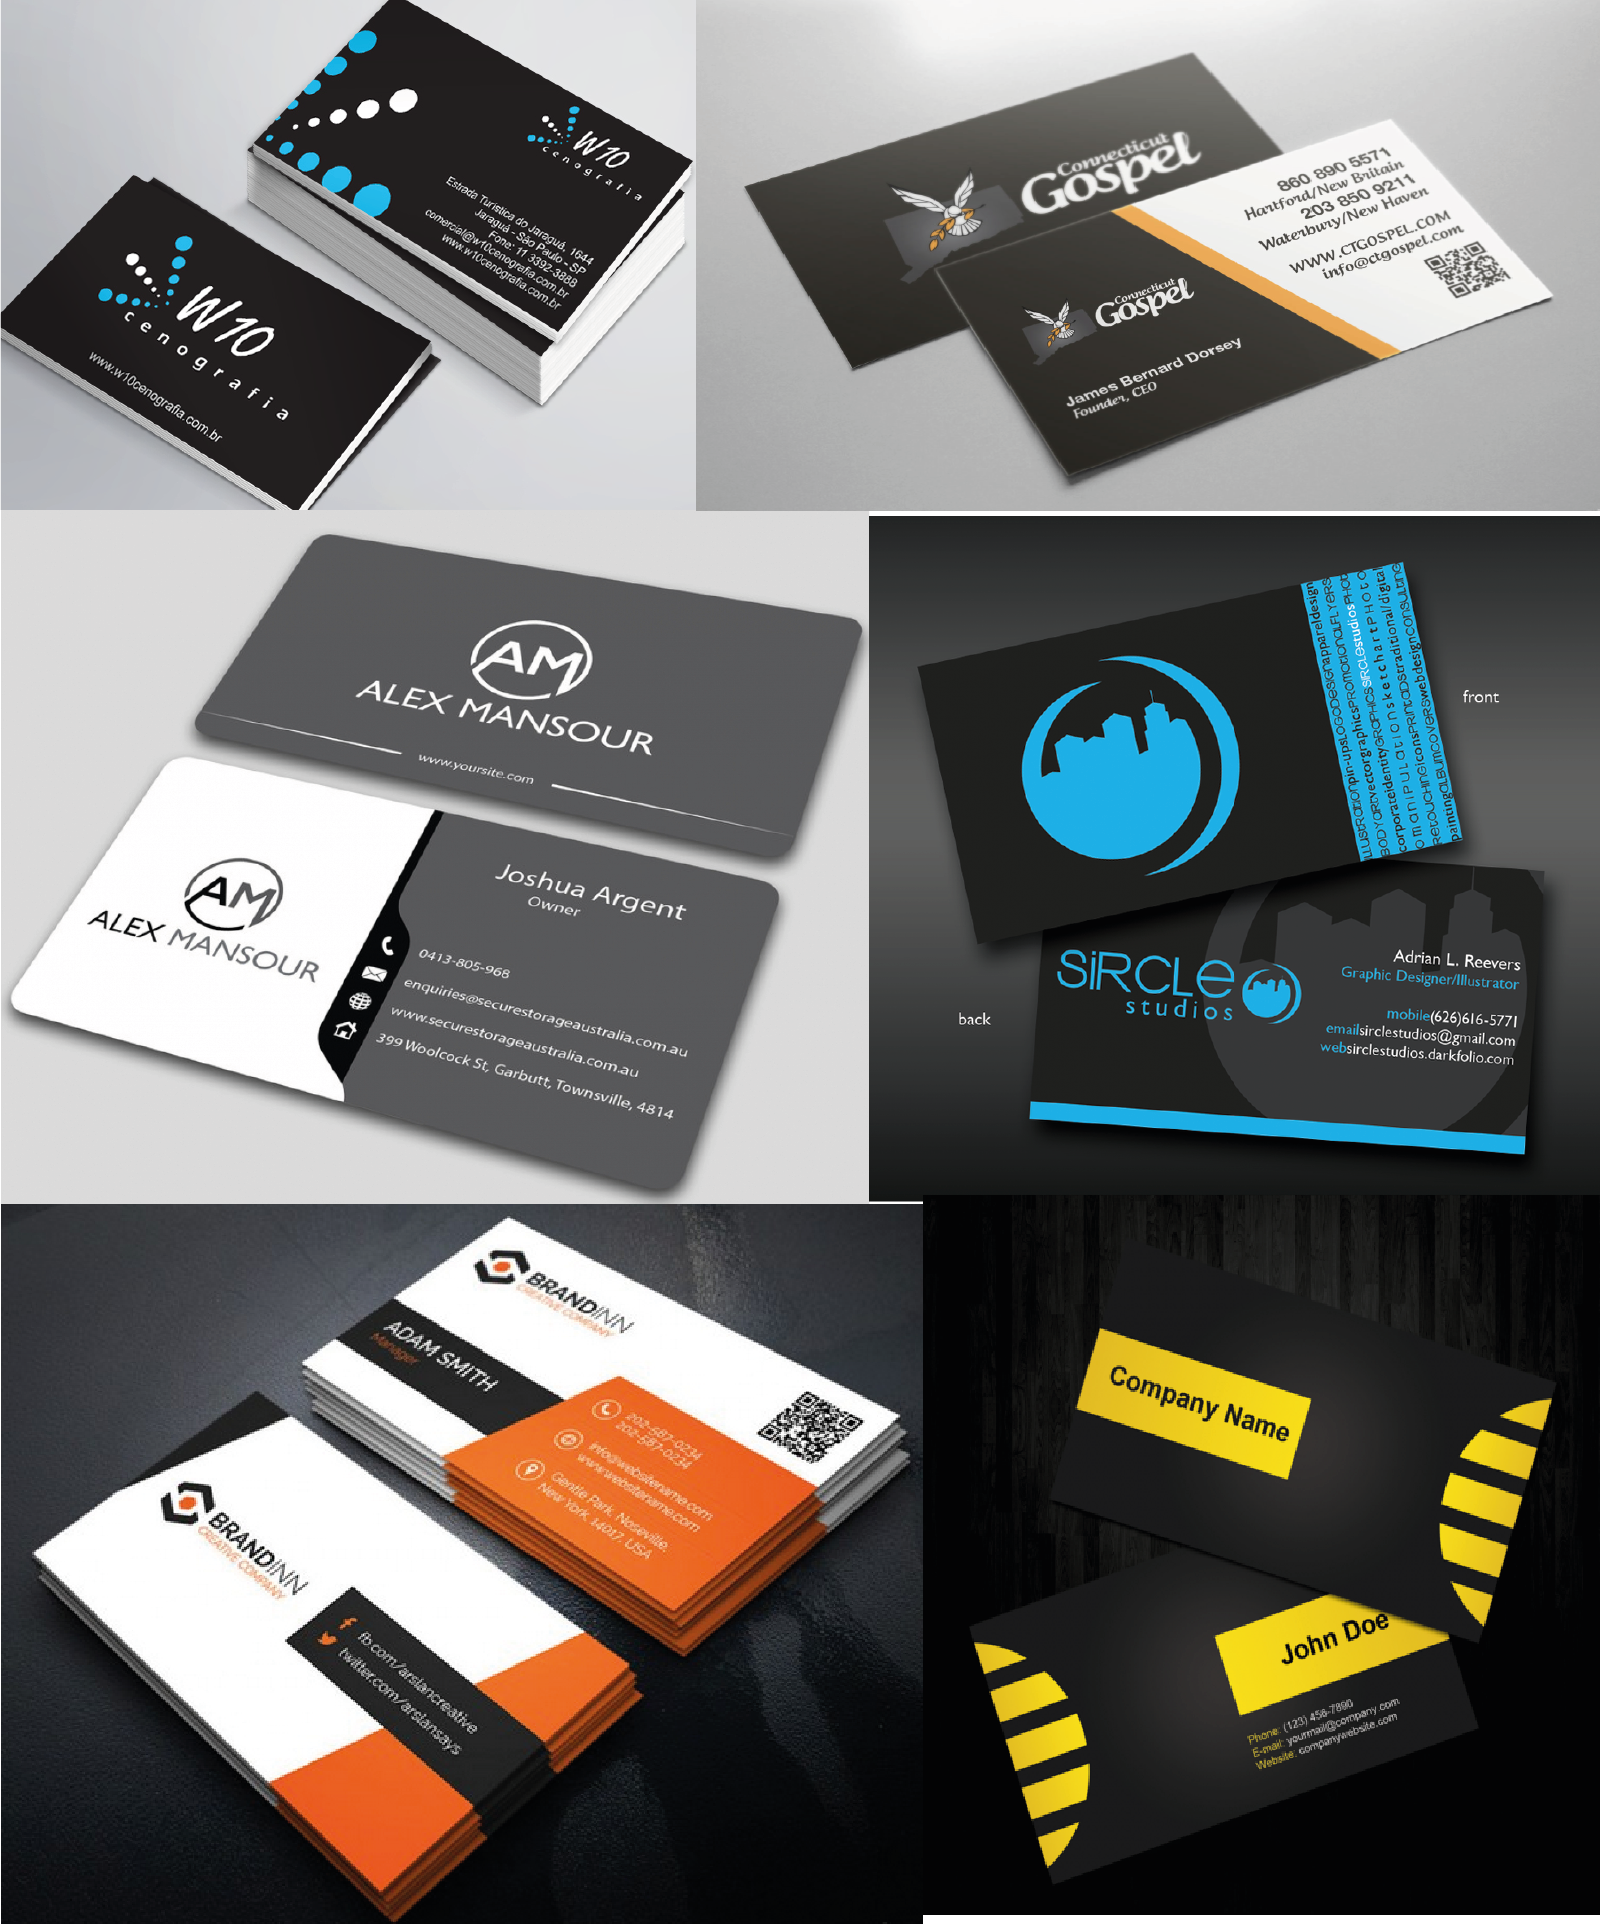 Design business cards + letterhead with unlimited revision for $10 ...